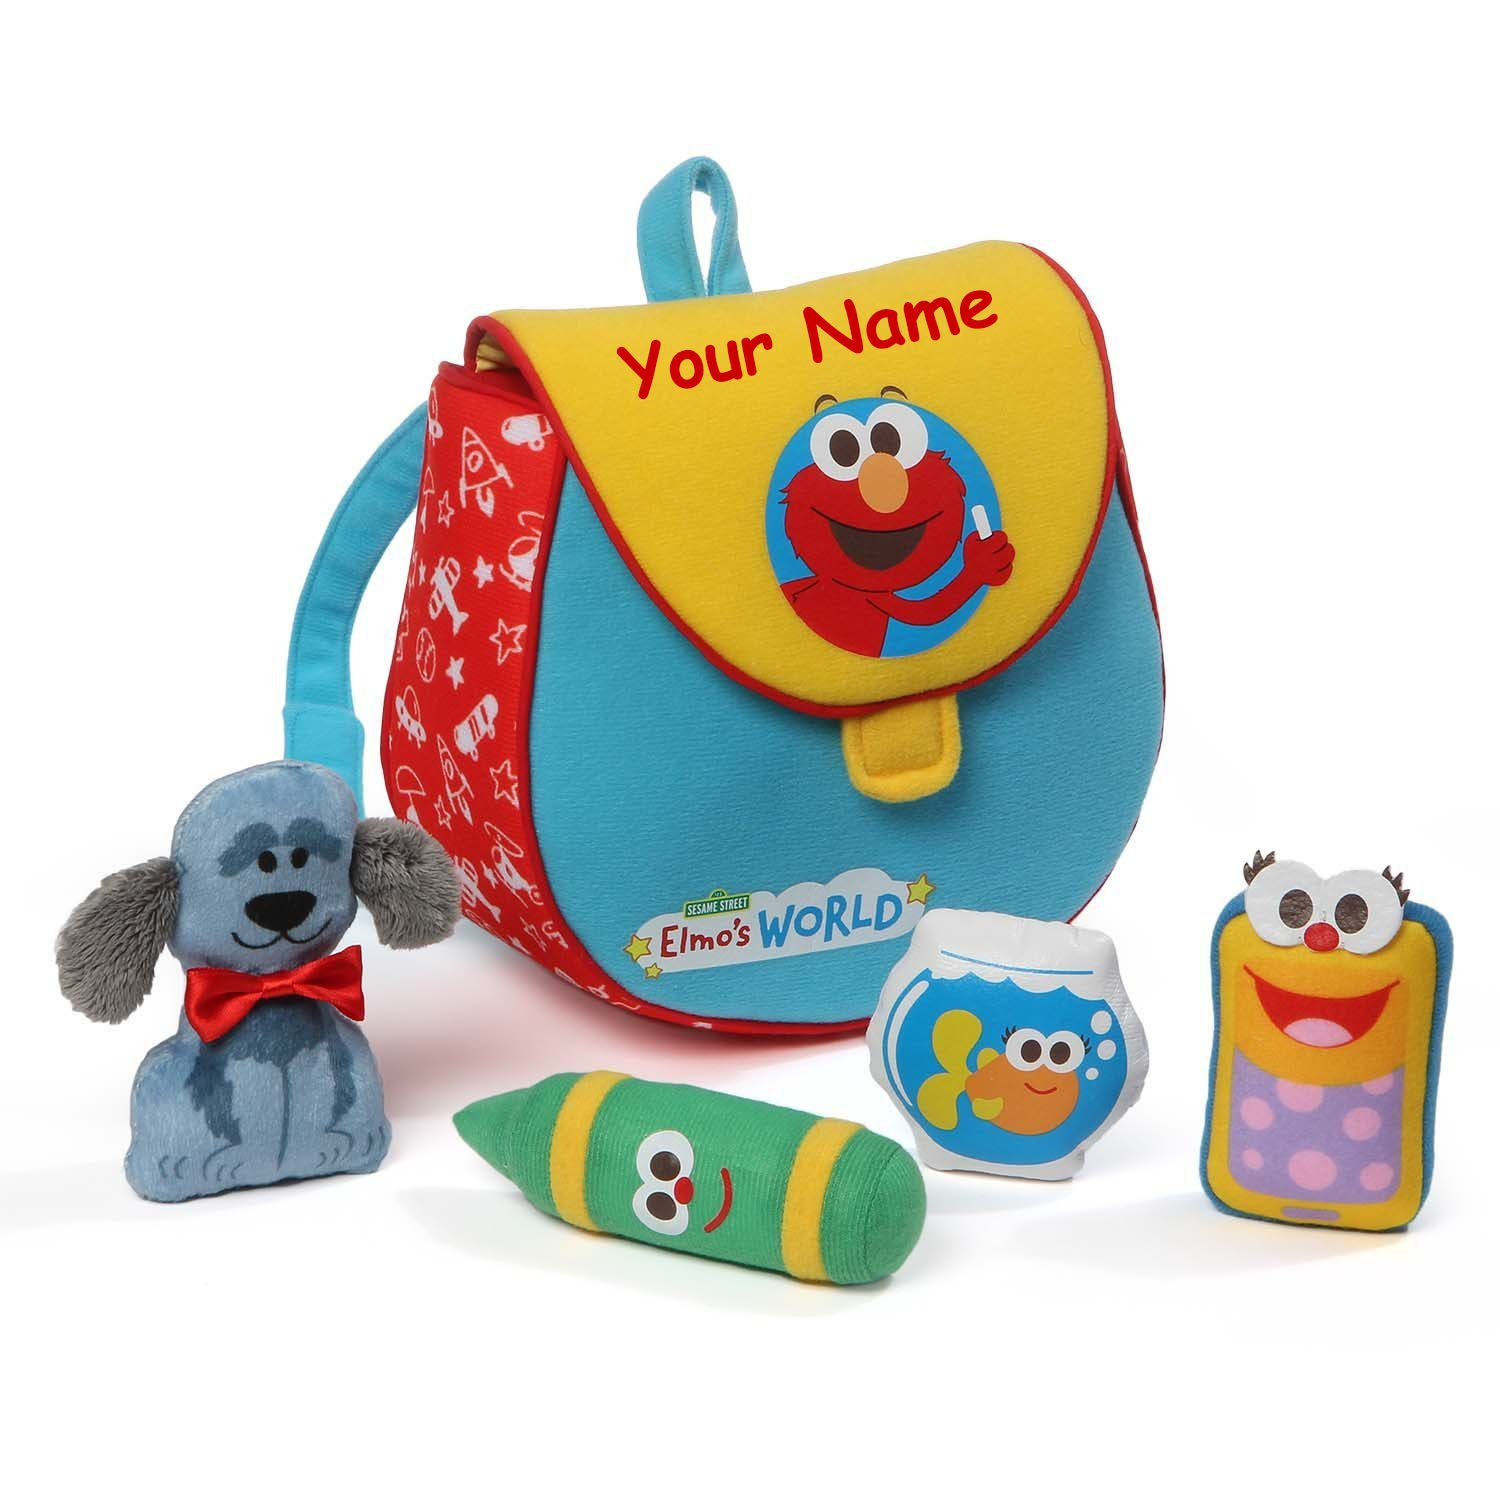 Personalized Sesame Street Elmo's World Playset with Mini Plush Bookbag - 7.5 Inches by GUND (Image #1)